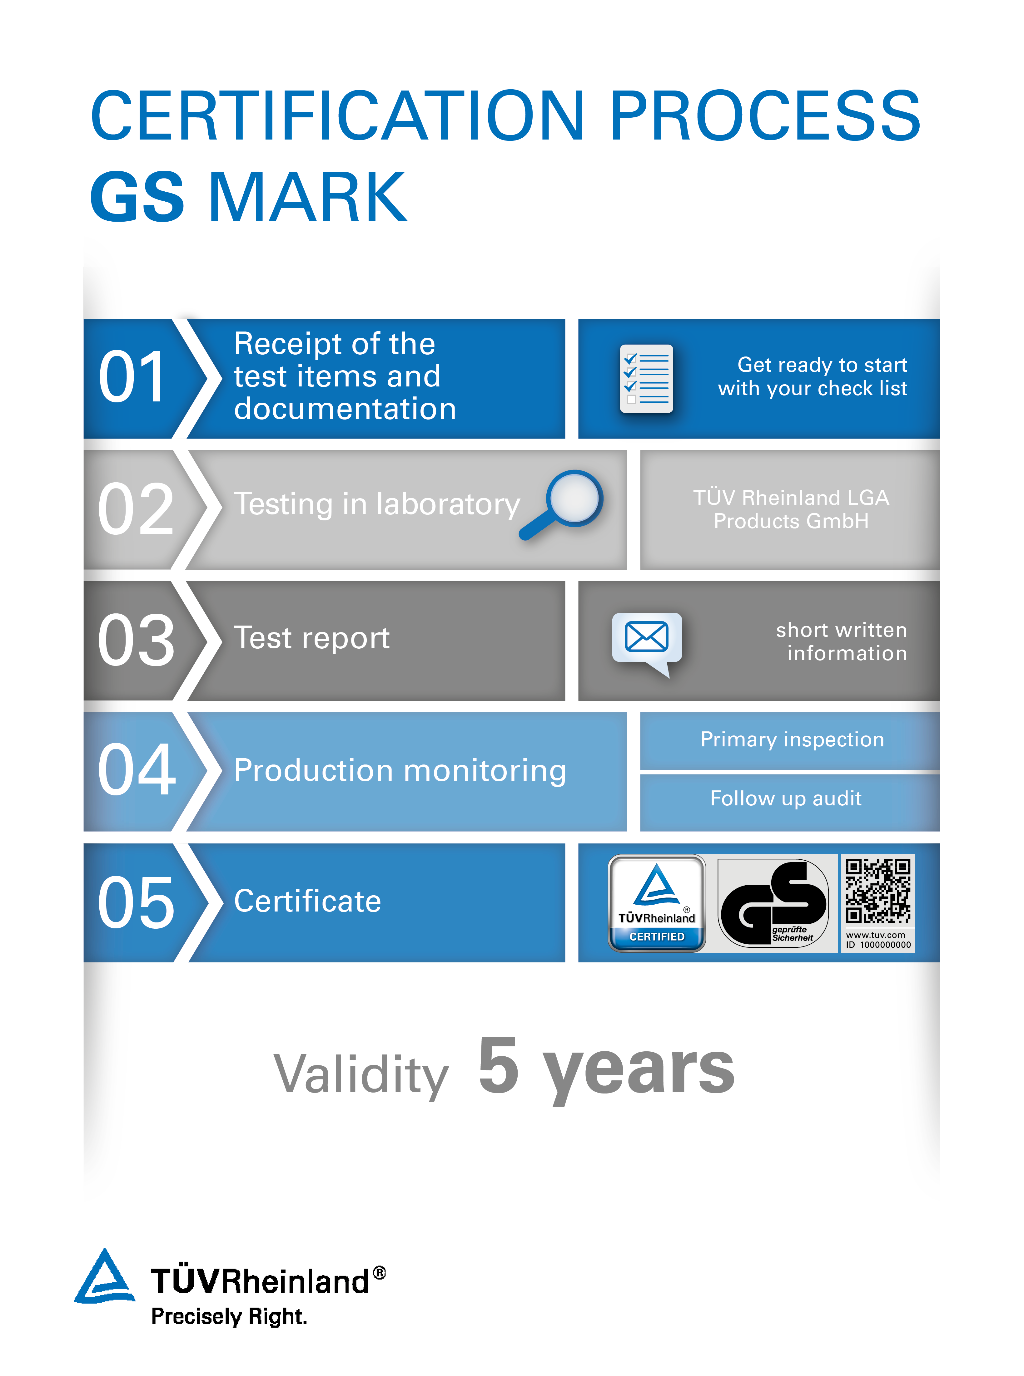 The certification process for the TÜV Rheinland GS mark